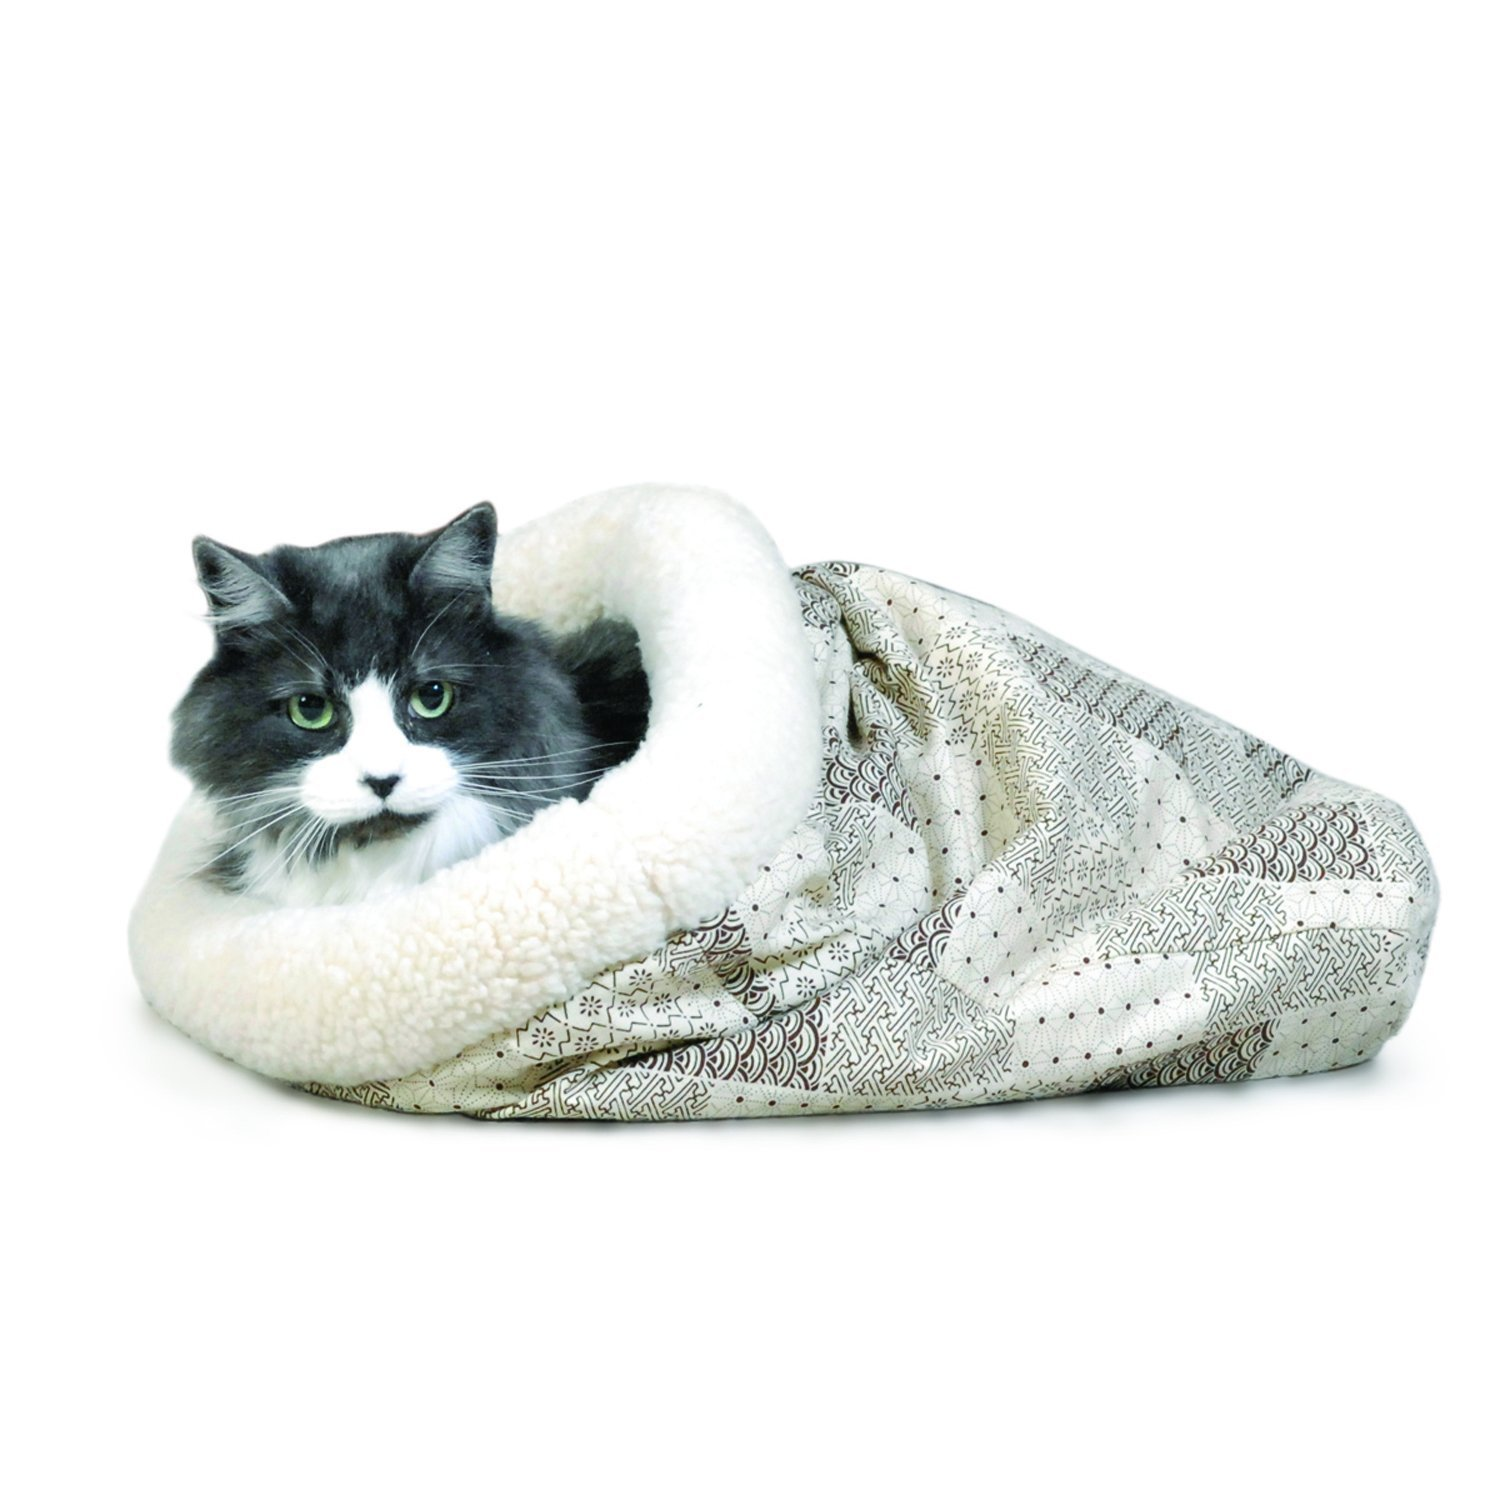 K&H Kitty Crinkle sack cat bed, cat gift idea image